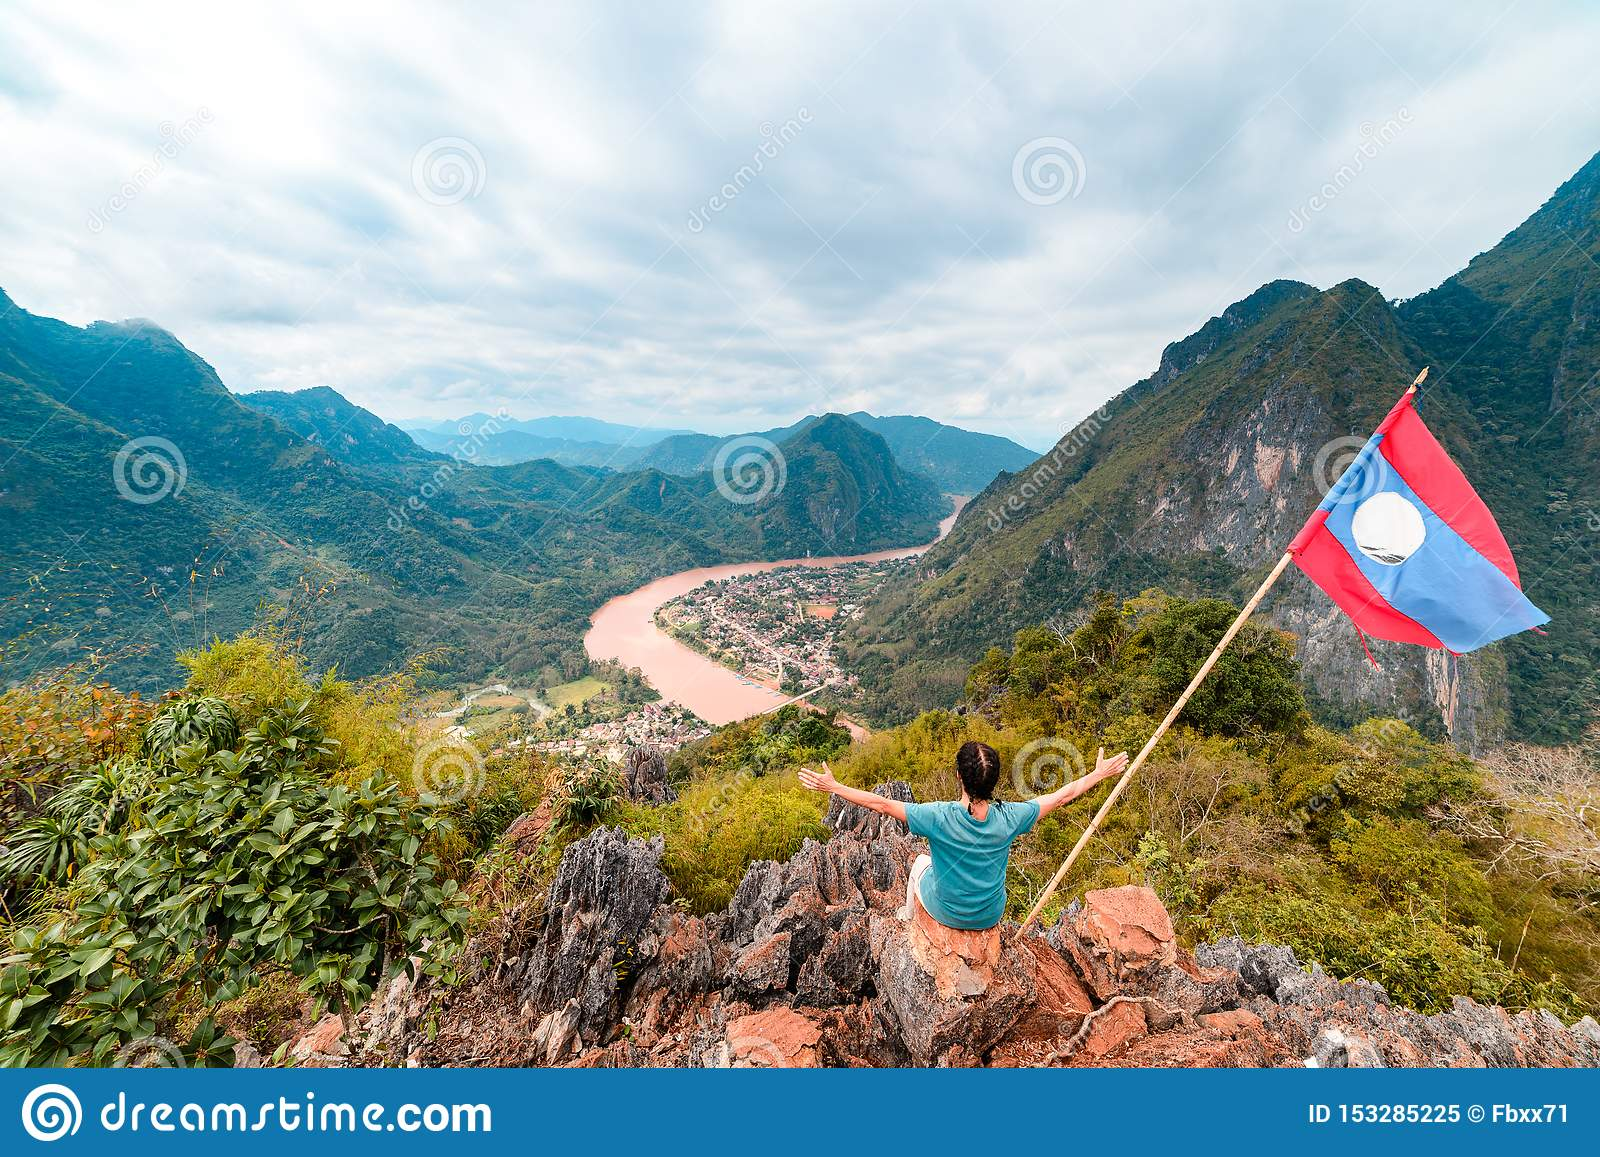 Woman with arms outstretched conquering mountain top at Nong Khiaw Nam Ou River valley Laos mature people traveling millenials